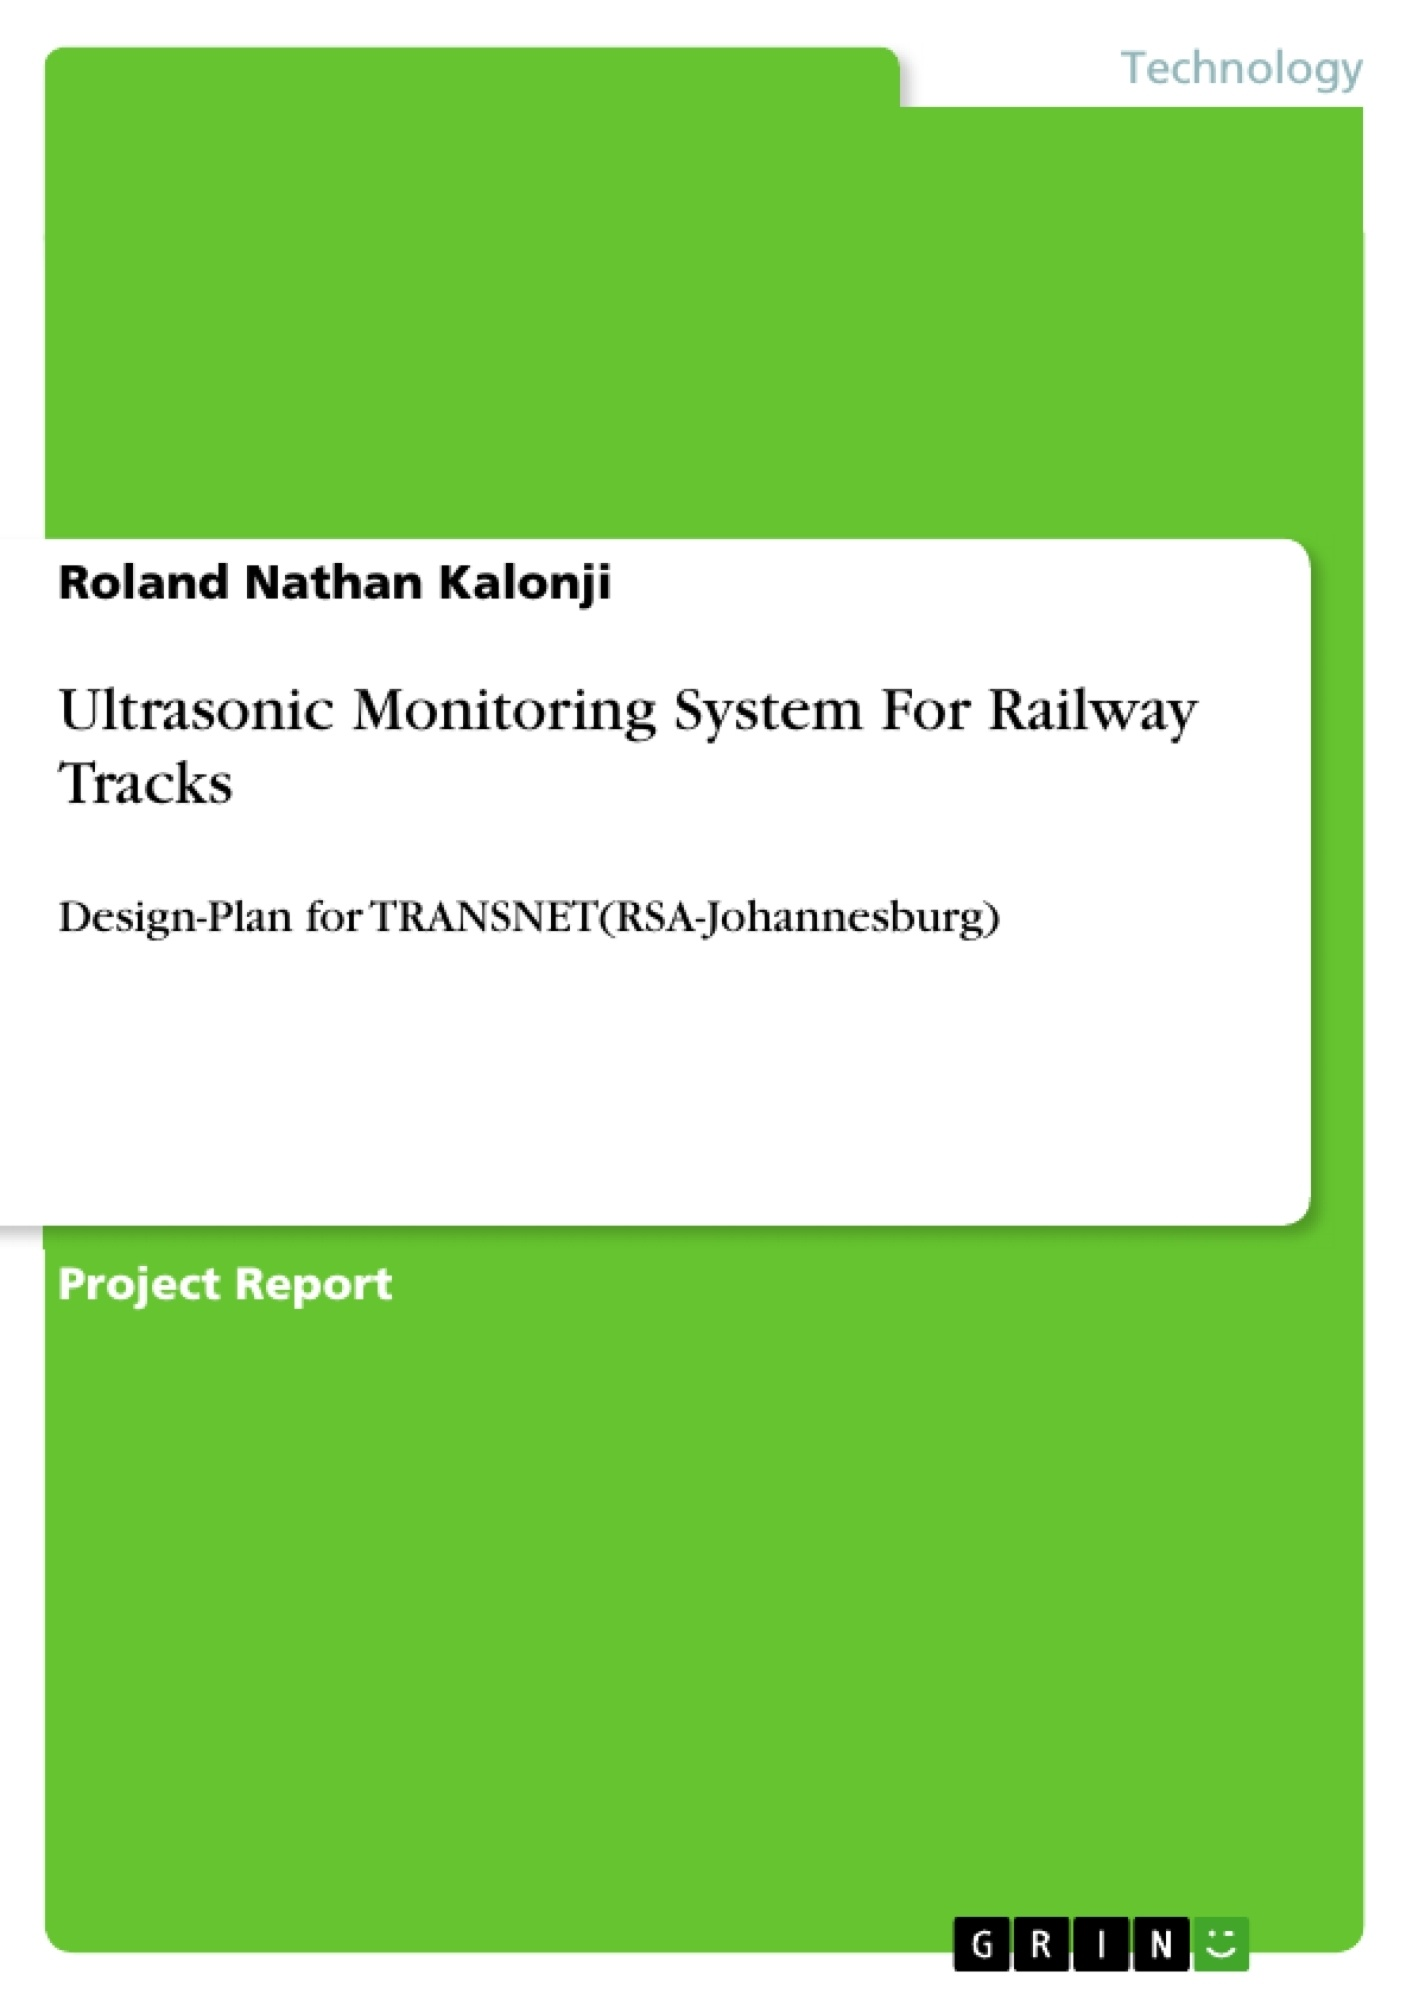 Title: Ultrasonic Monitoring System For Railway Tracks